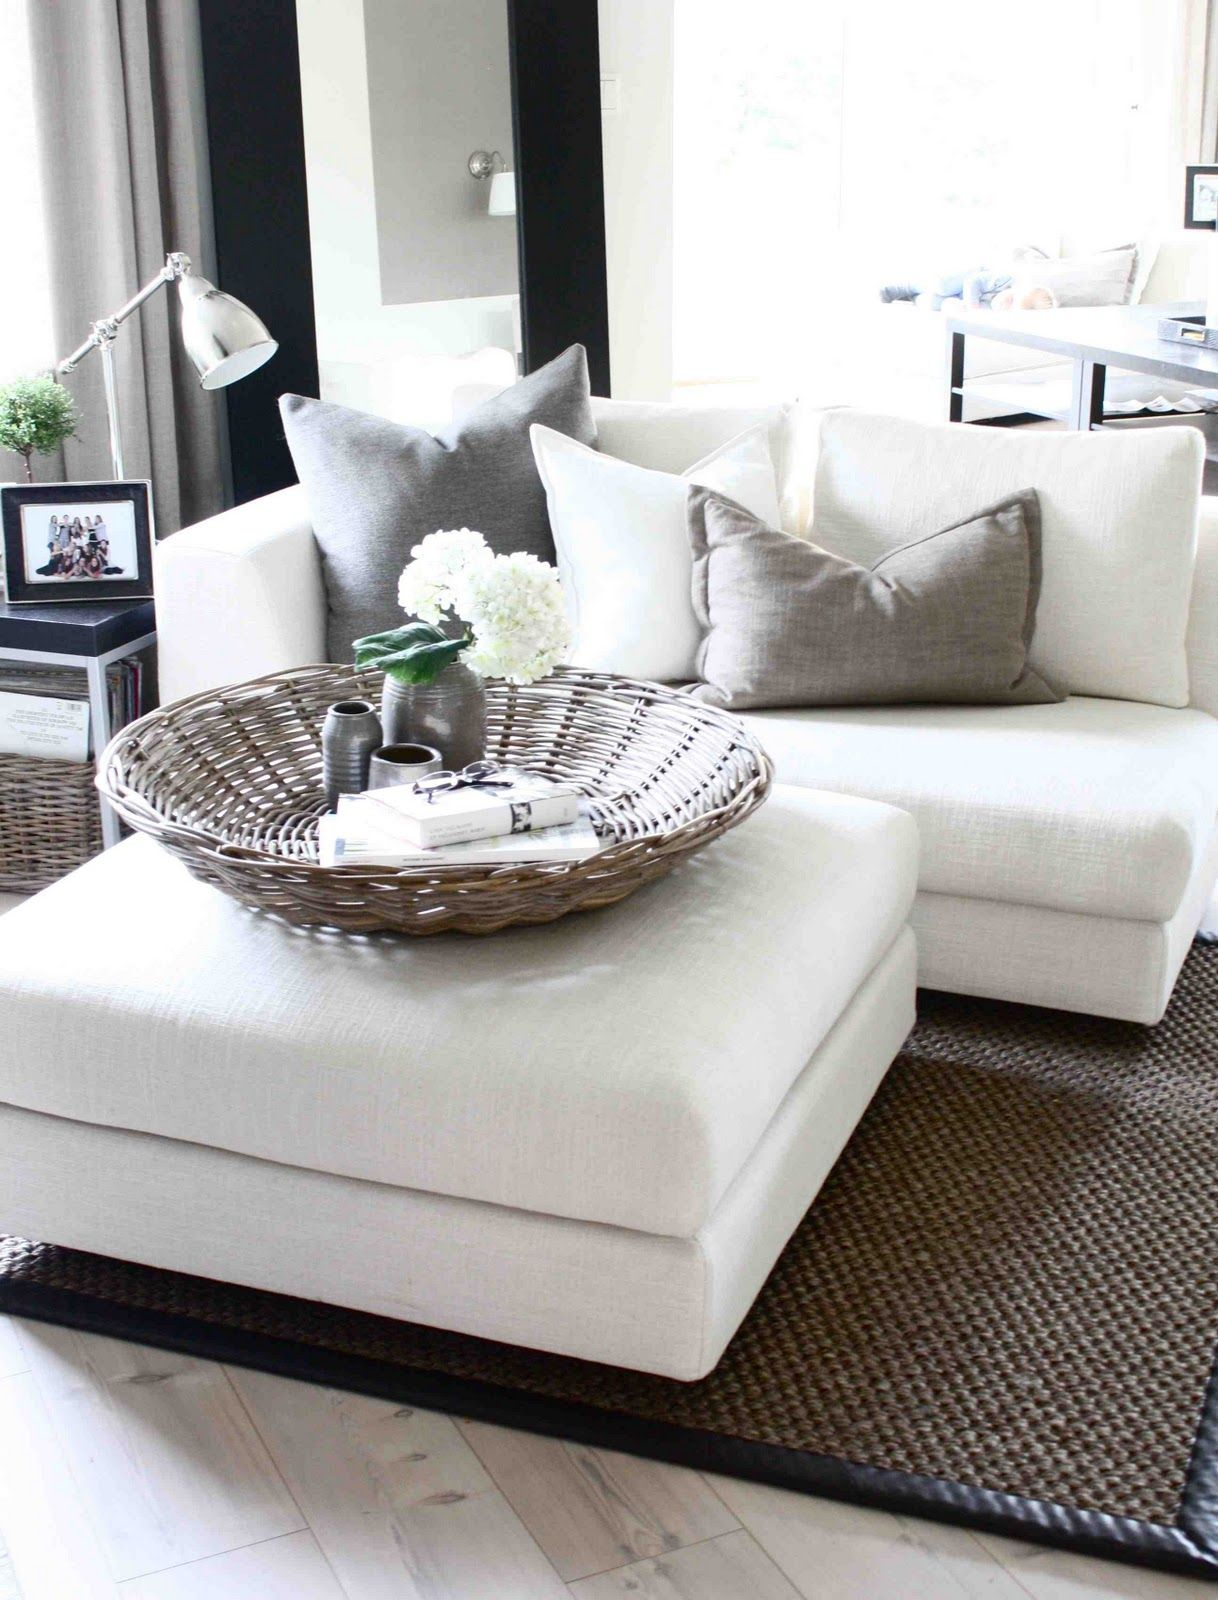 White Loveseat If Only My Husband Dog And Soon To Be Child Could Keep This White Home Home Decor Home Living Room